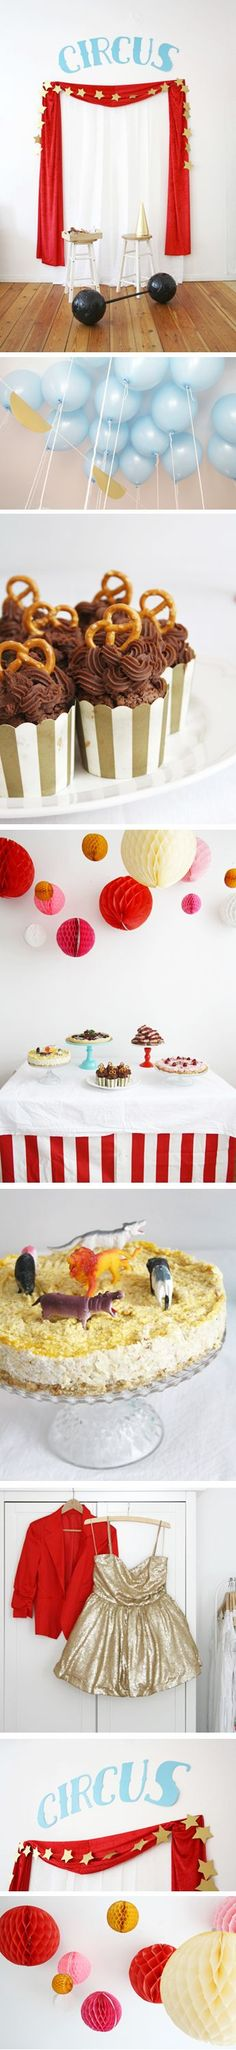 Organize and host your own circus theme party with colorful decor ideas, bright costumes and a delicious food table. Lots of inspiration via Luloveshandmade.com.